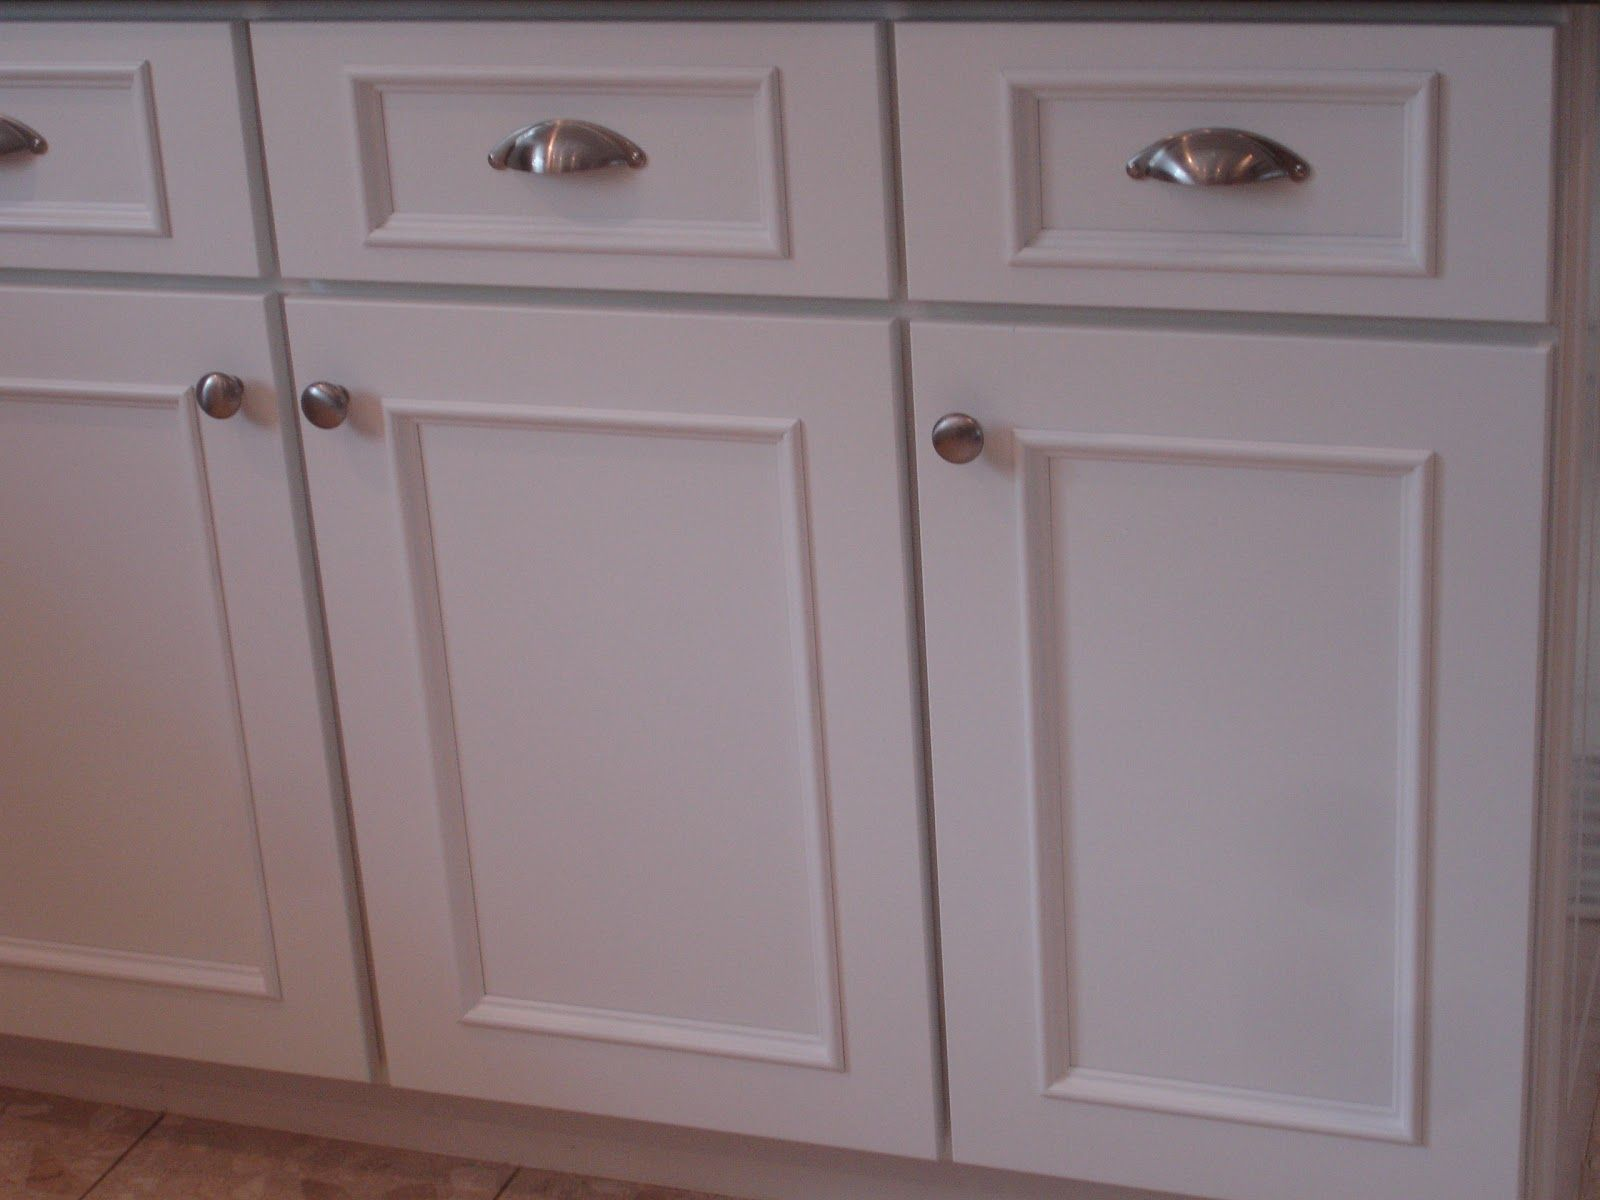 White Kitchen Cabinet doors | New cabinet doors and drawers. & 25+ best ideas about New cabinet doors on Pinterest | Kitchen ... Pezcame.Com